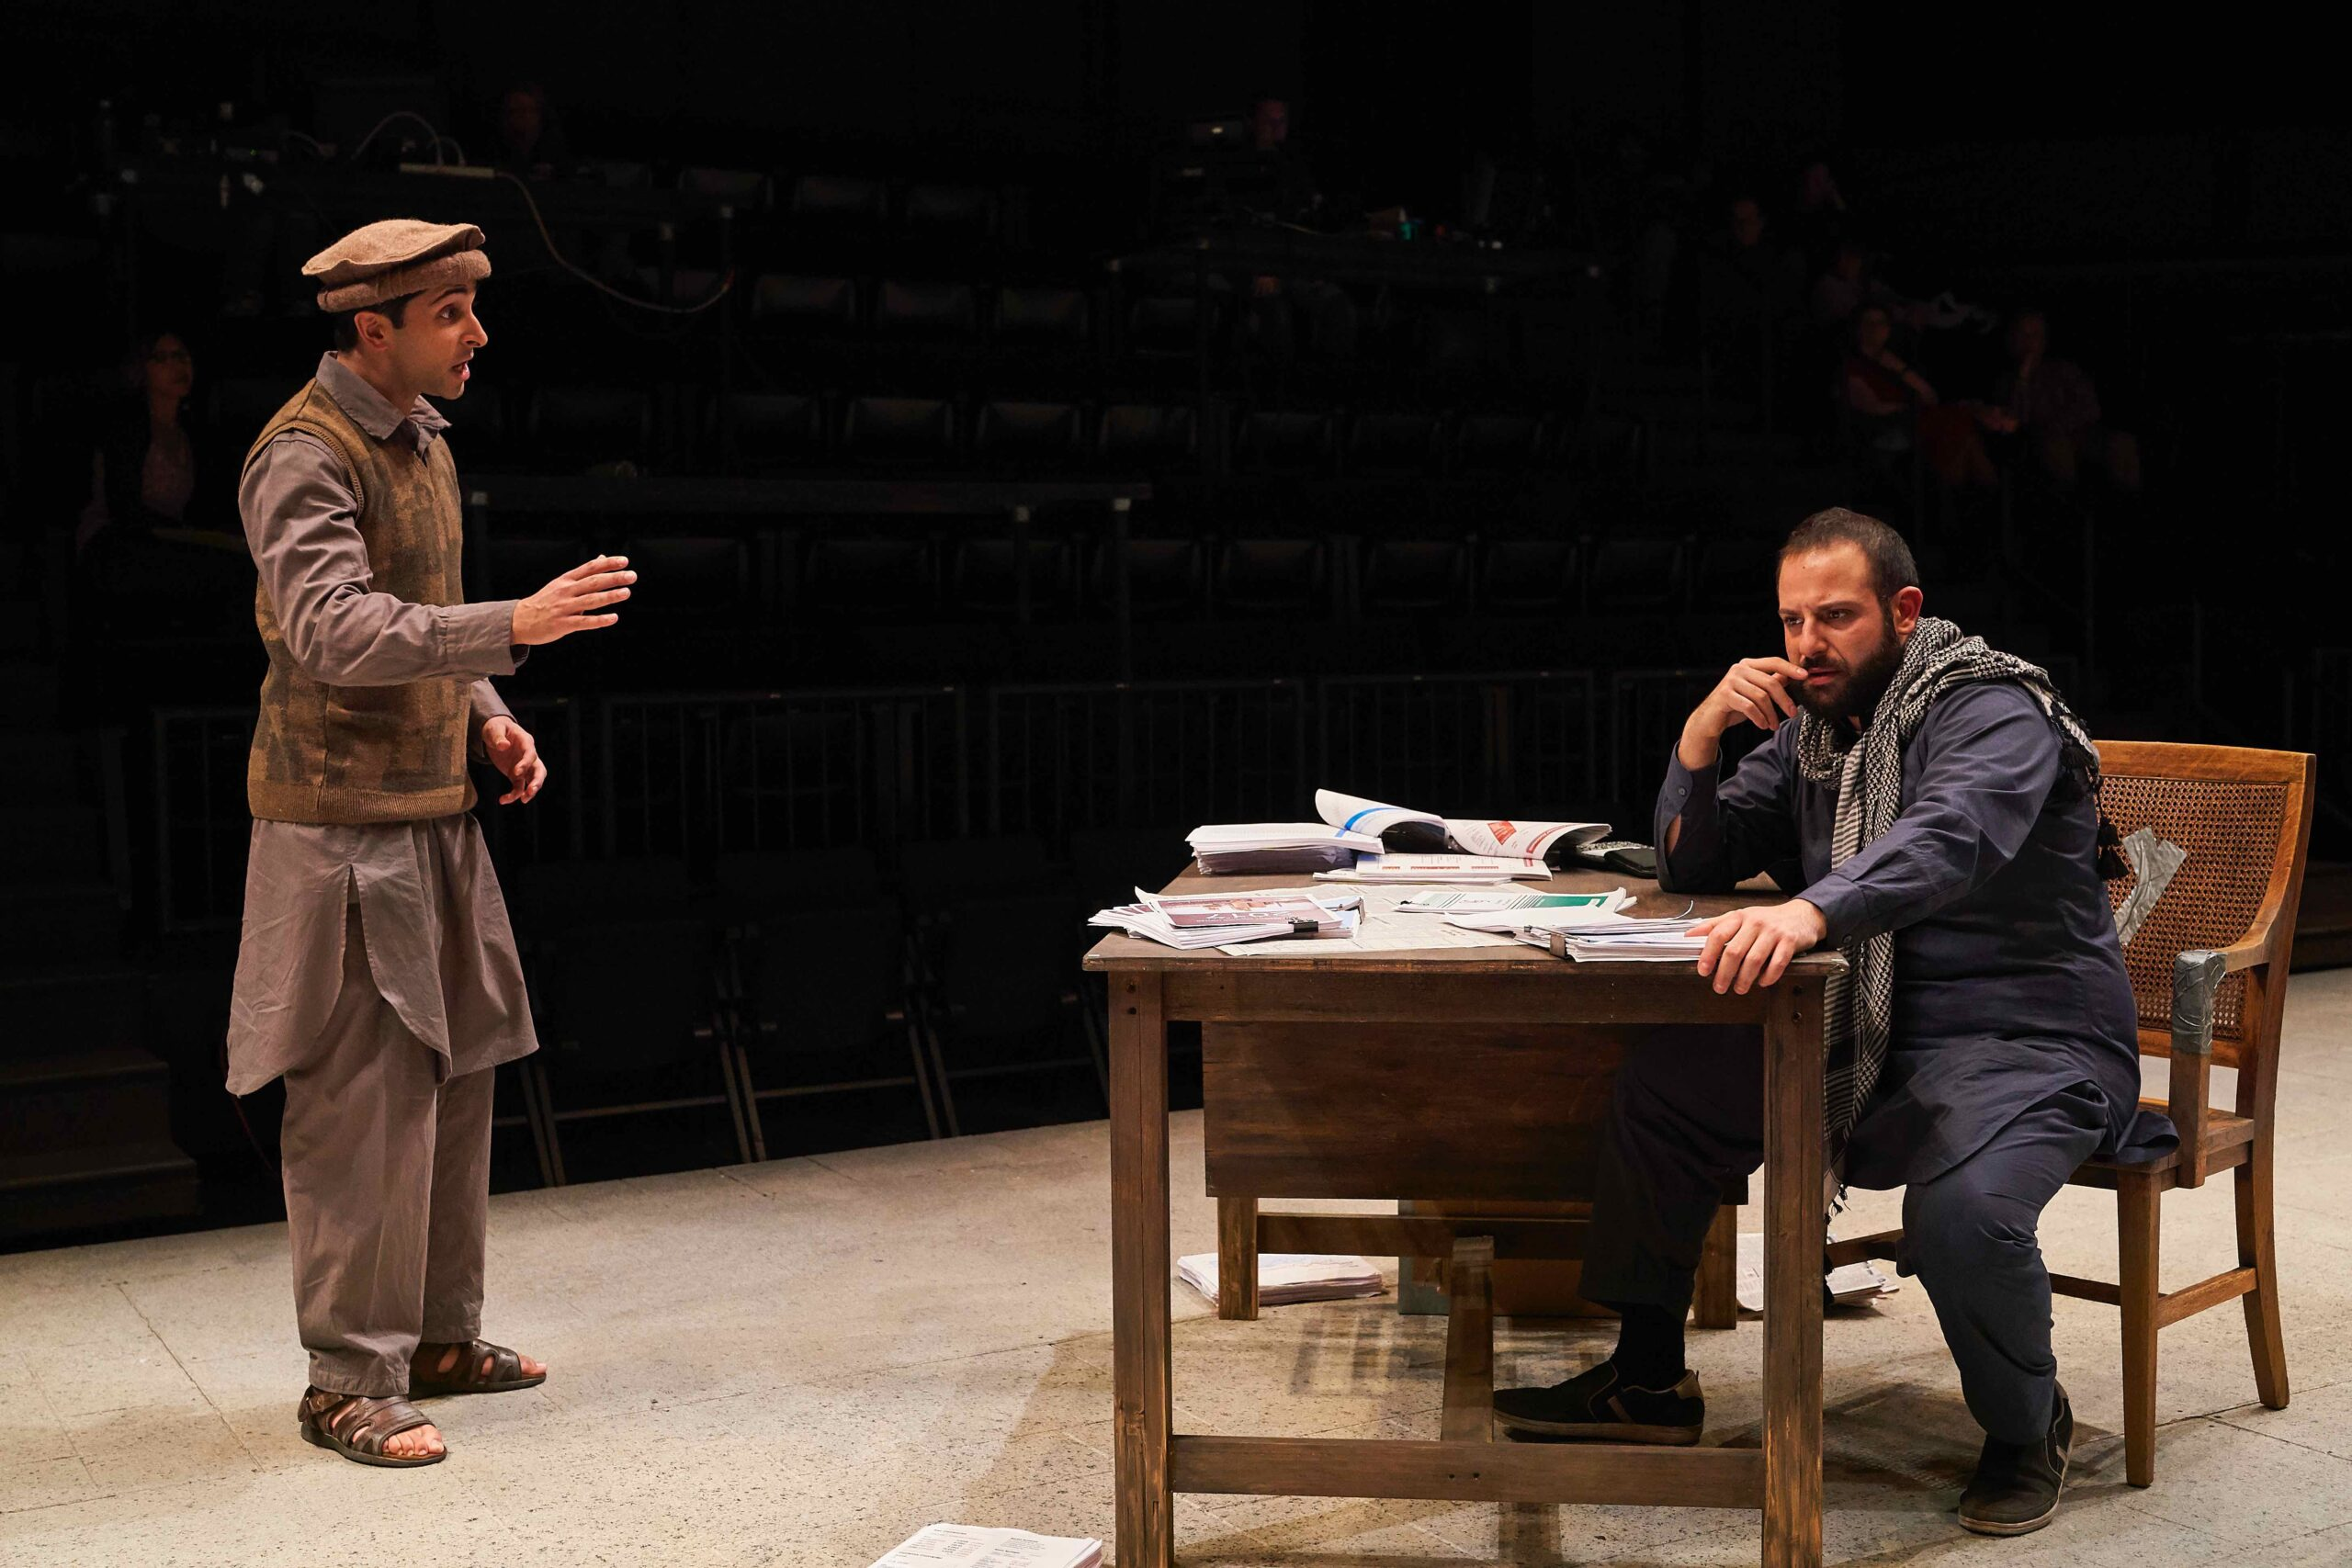 """The Invisible Hand"" by Ayad Akhtar Directed by Pirronne Yousefzadeh Scenic Design by Mikiko Suzuki MacAdams Costume Design by Valérie Thérèse Bart Lighting Design by Michael Boll Sound Design by Daniel Perelstein Photo by Roger Mastroianni Cleveland Play House"